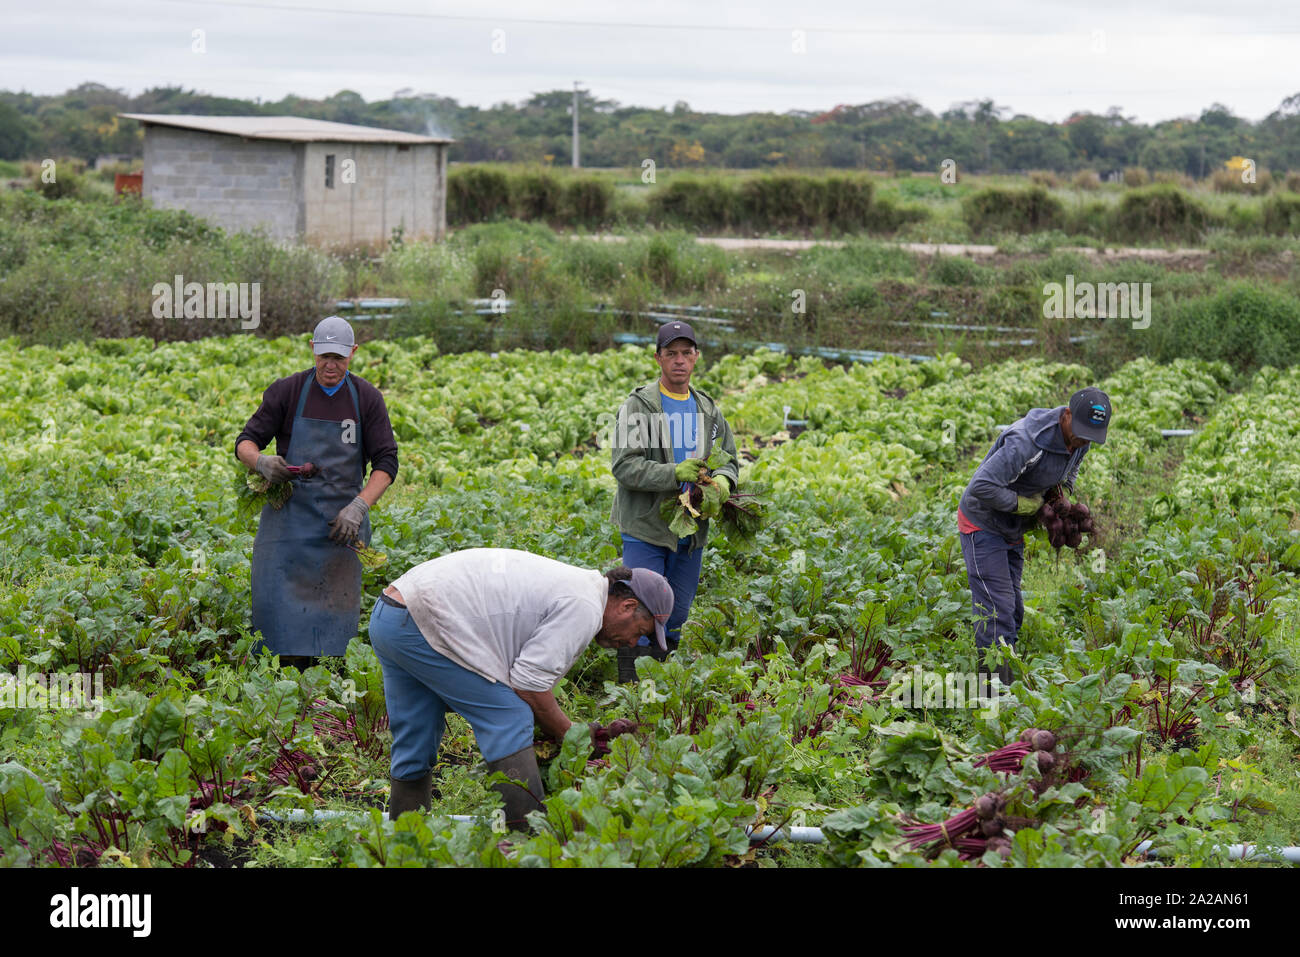 Workers harvest salads in Mogi das Cruzes, where most of the vegetables consumed by the inhabitants of Sao Paulo are grown, Brazil. Stock Photo